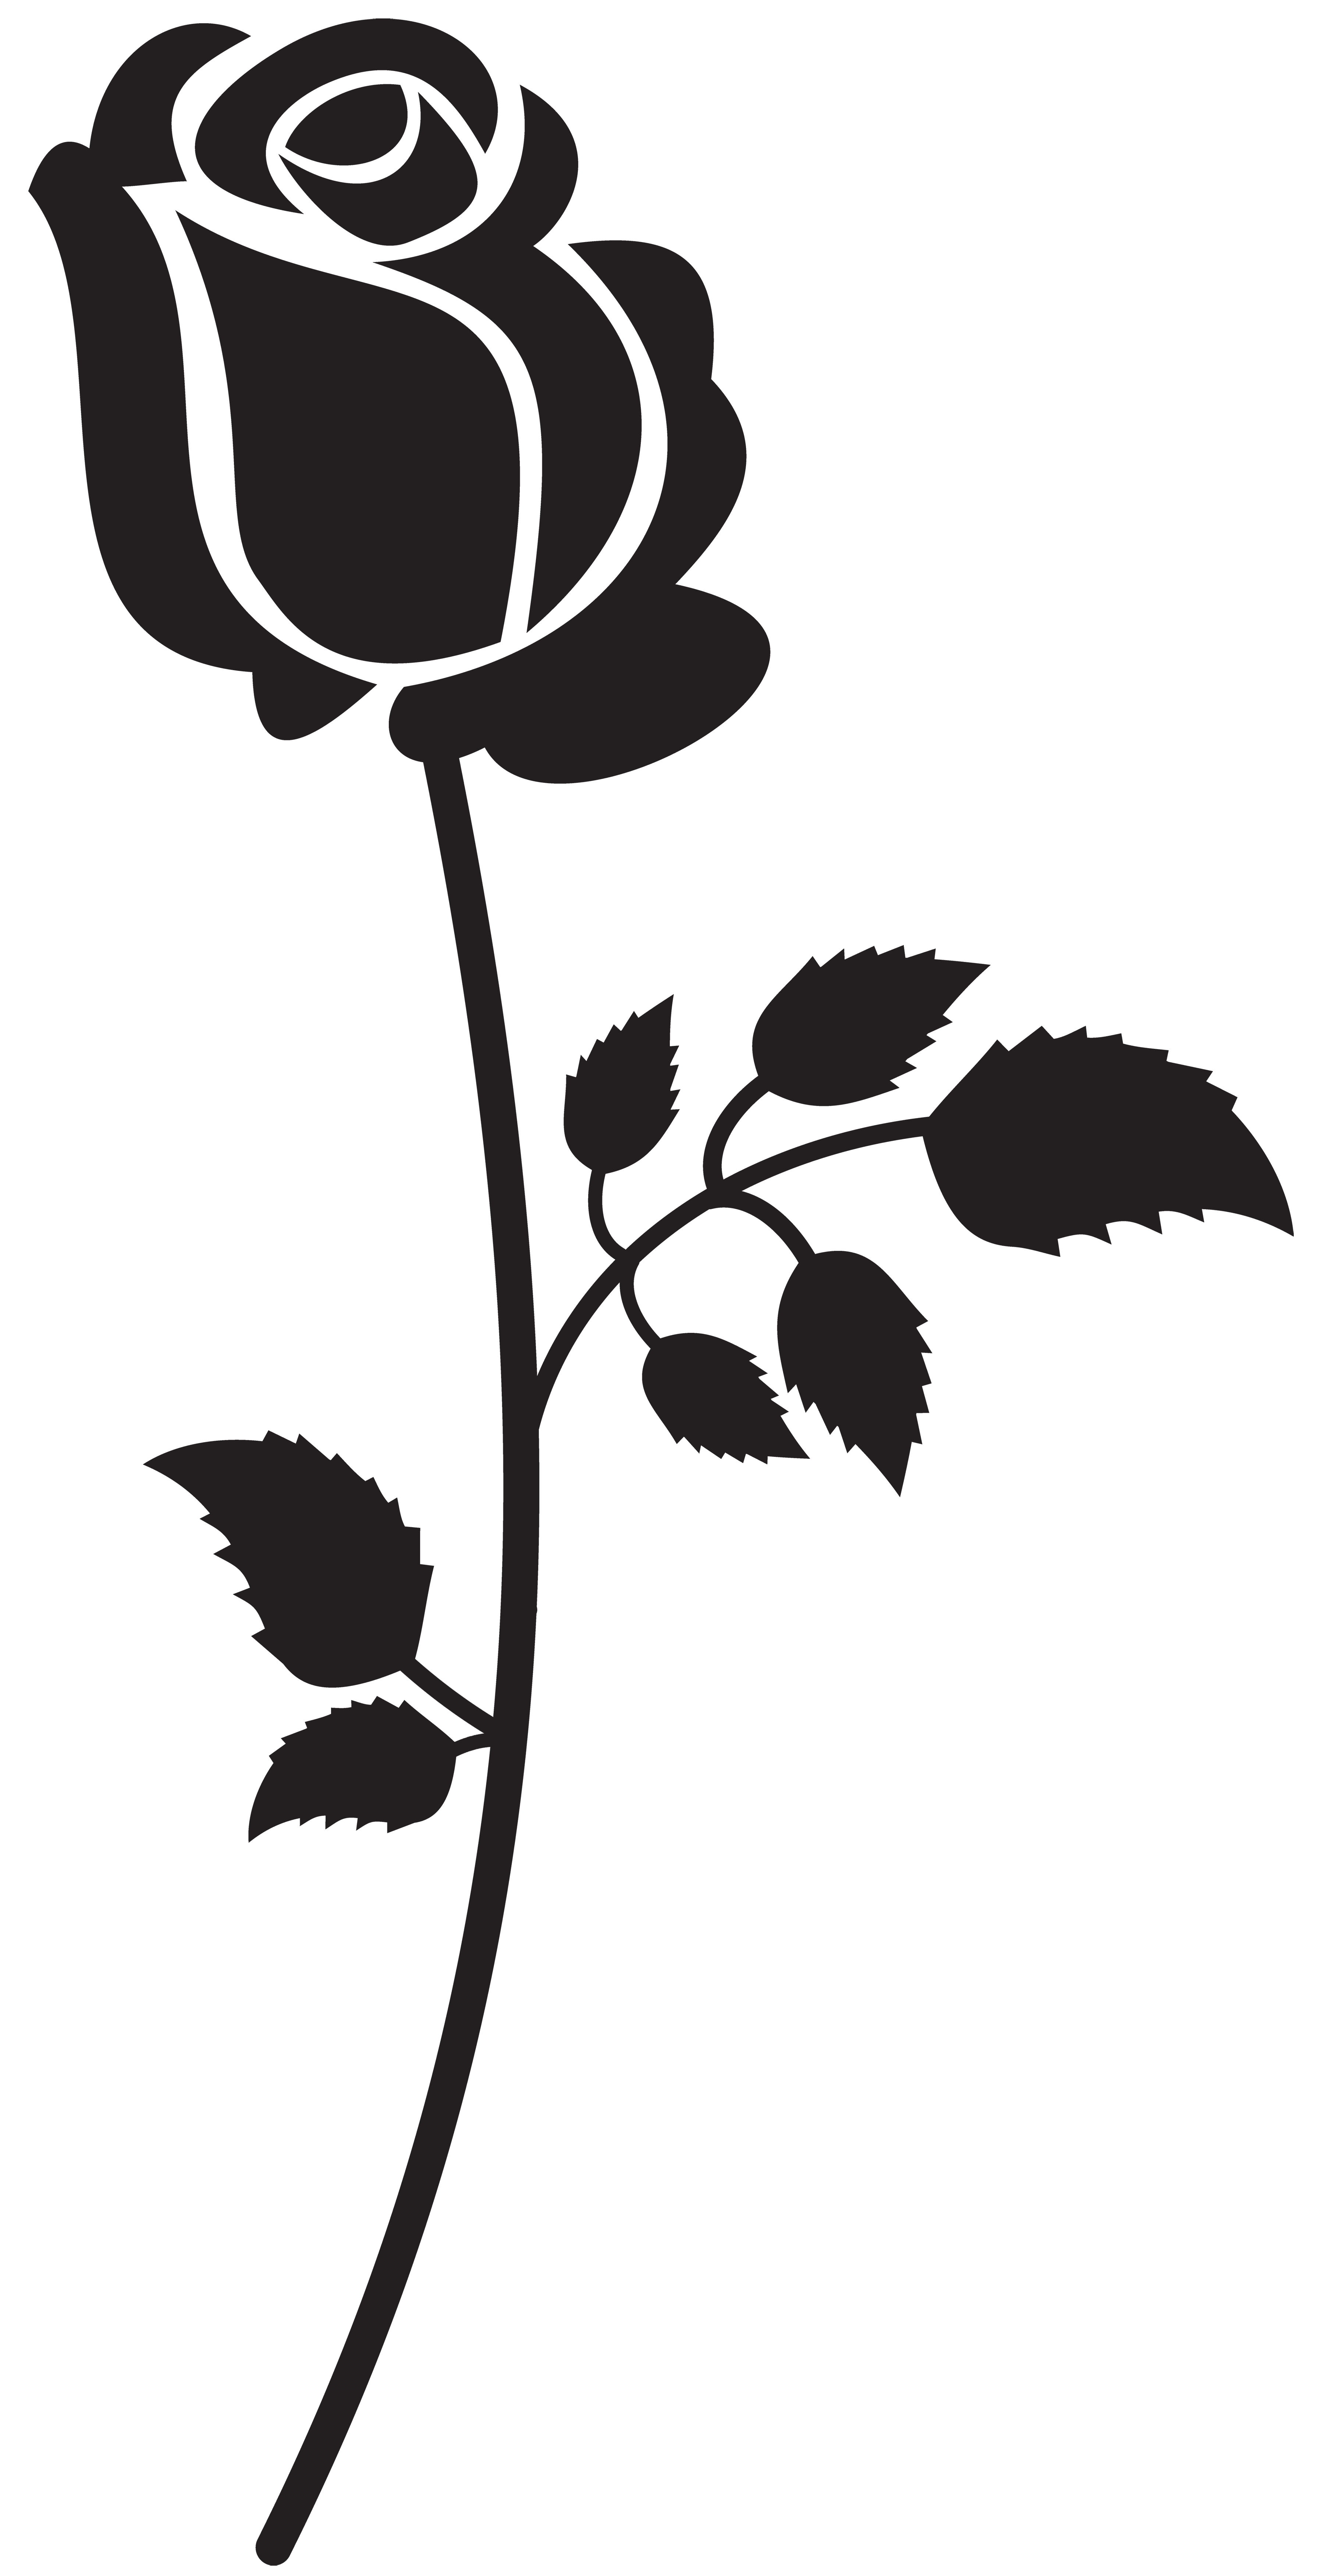 White Rose clipart silhouette Image High Yopriceville  size